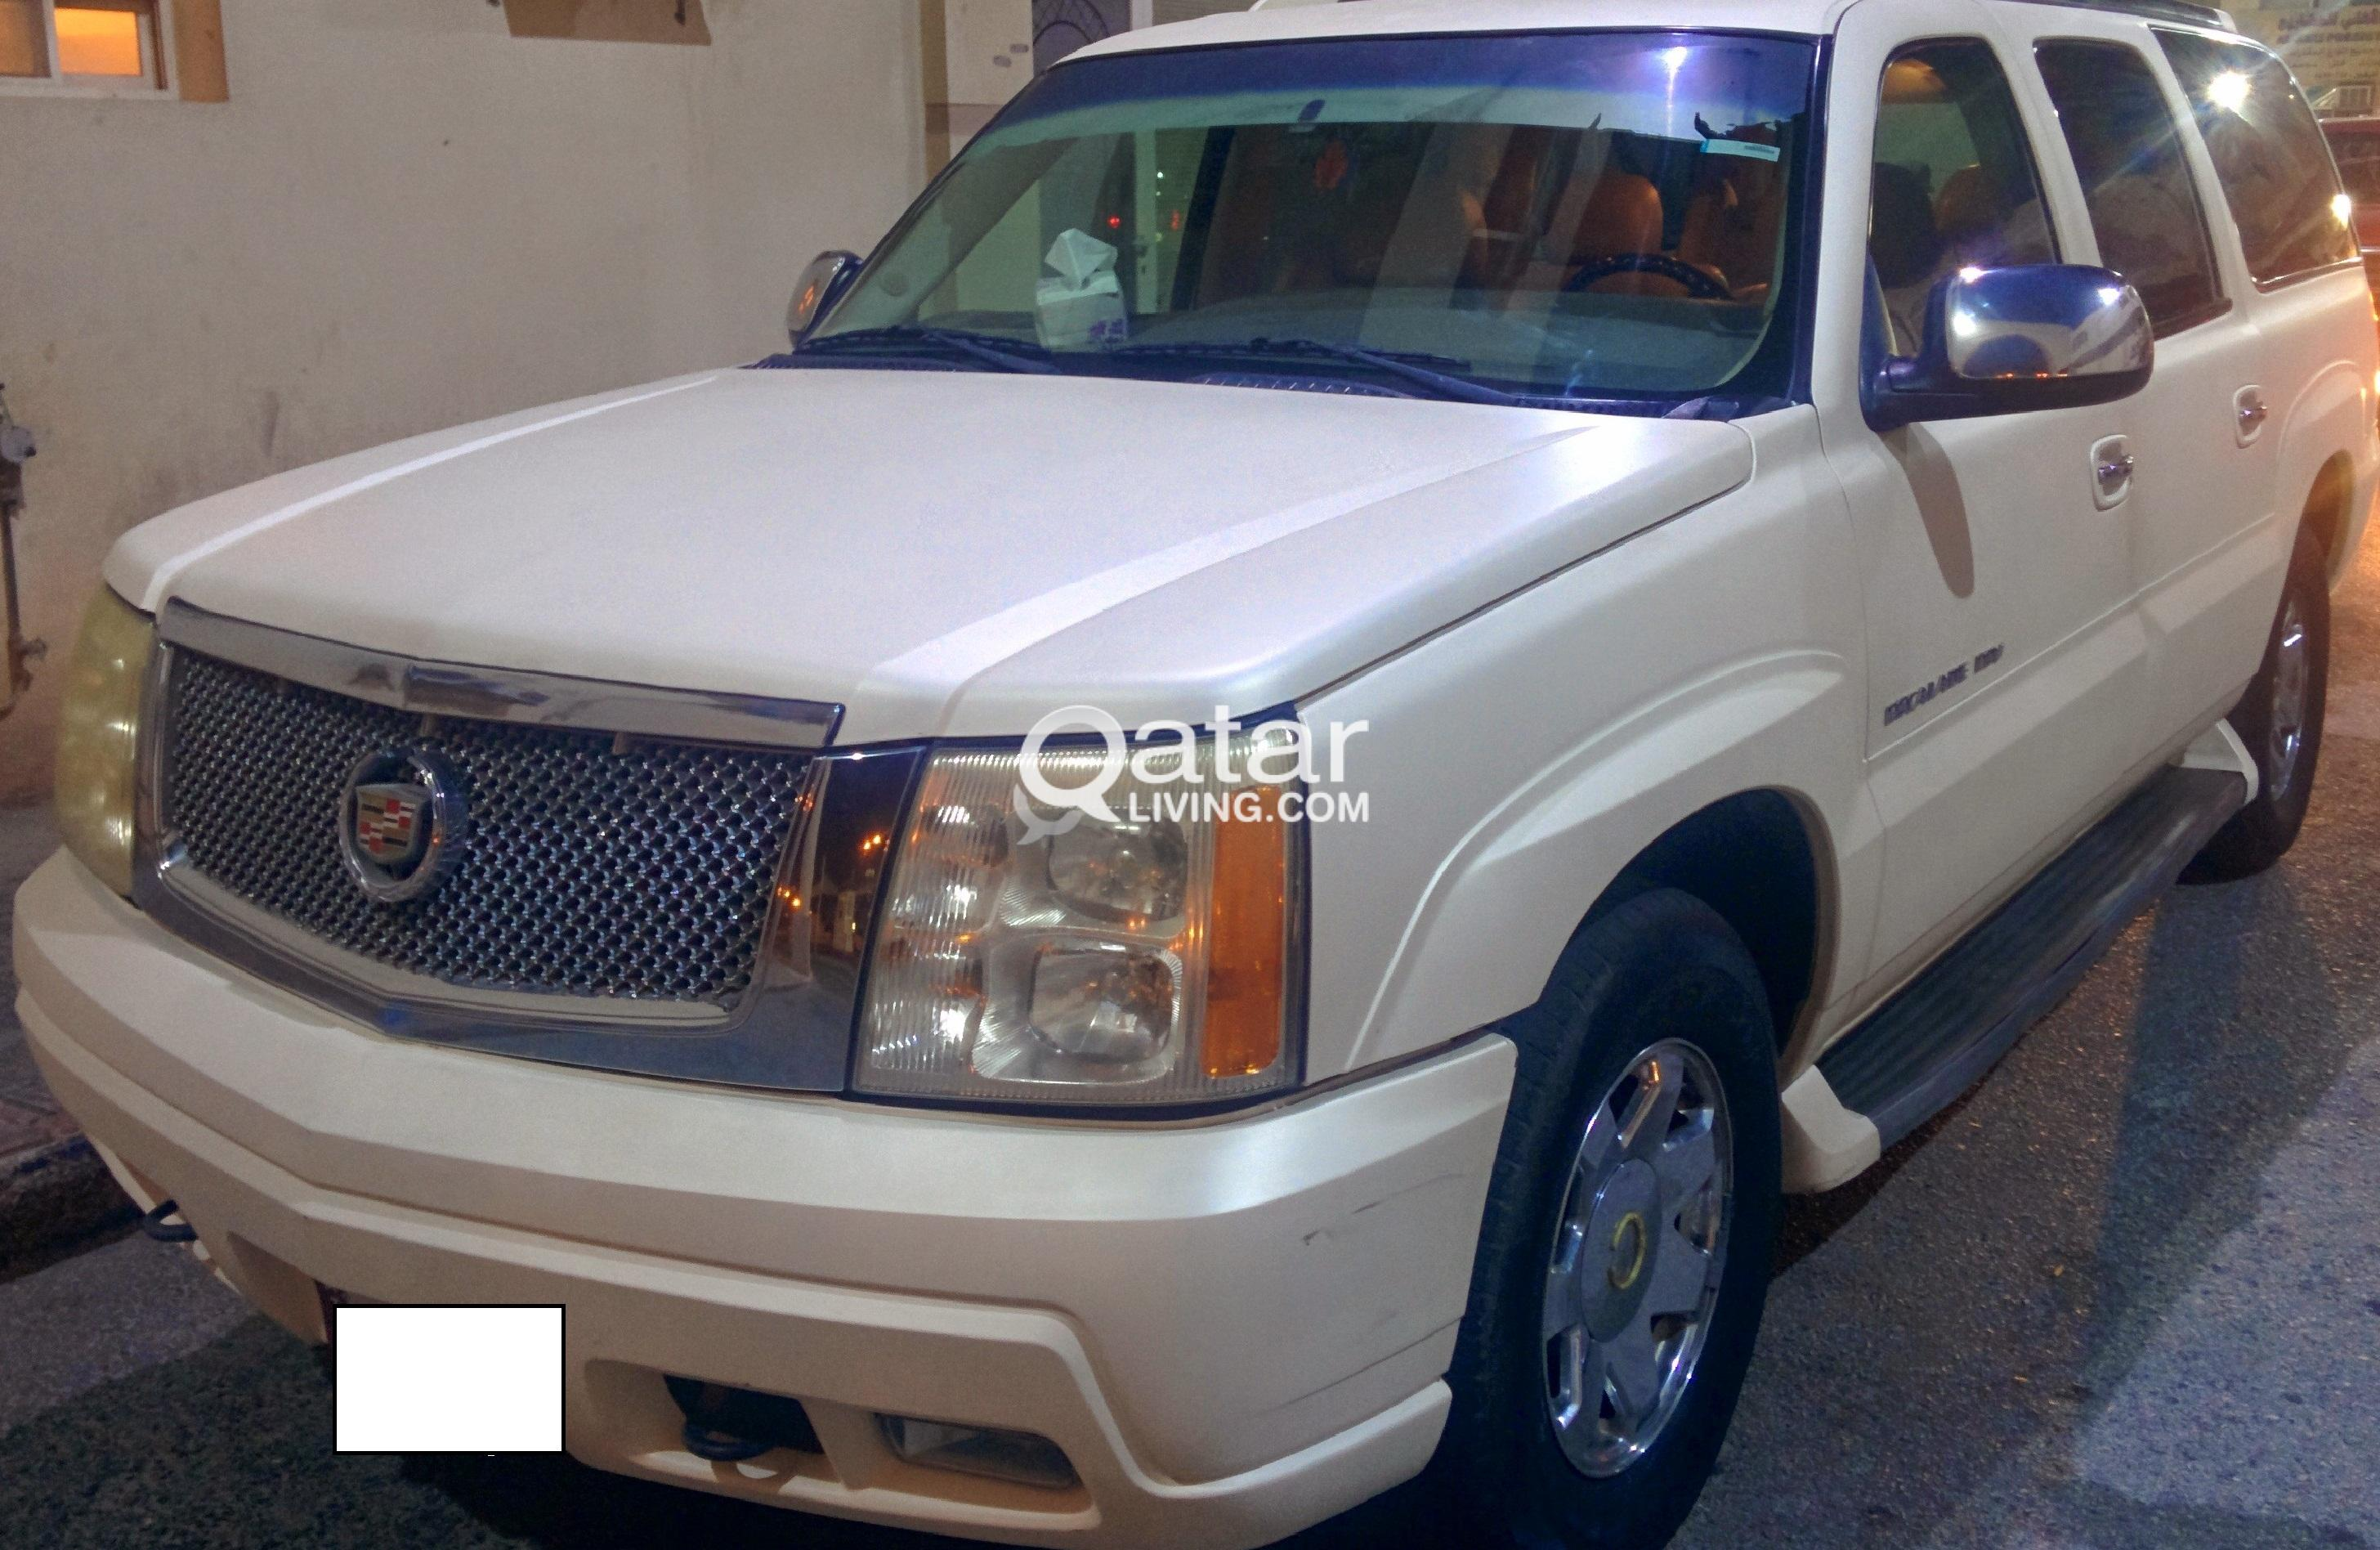 left cert cadillac beige view al lot online l en escalade auctions in of title copart auto for salvage carfinder sale montgomery on